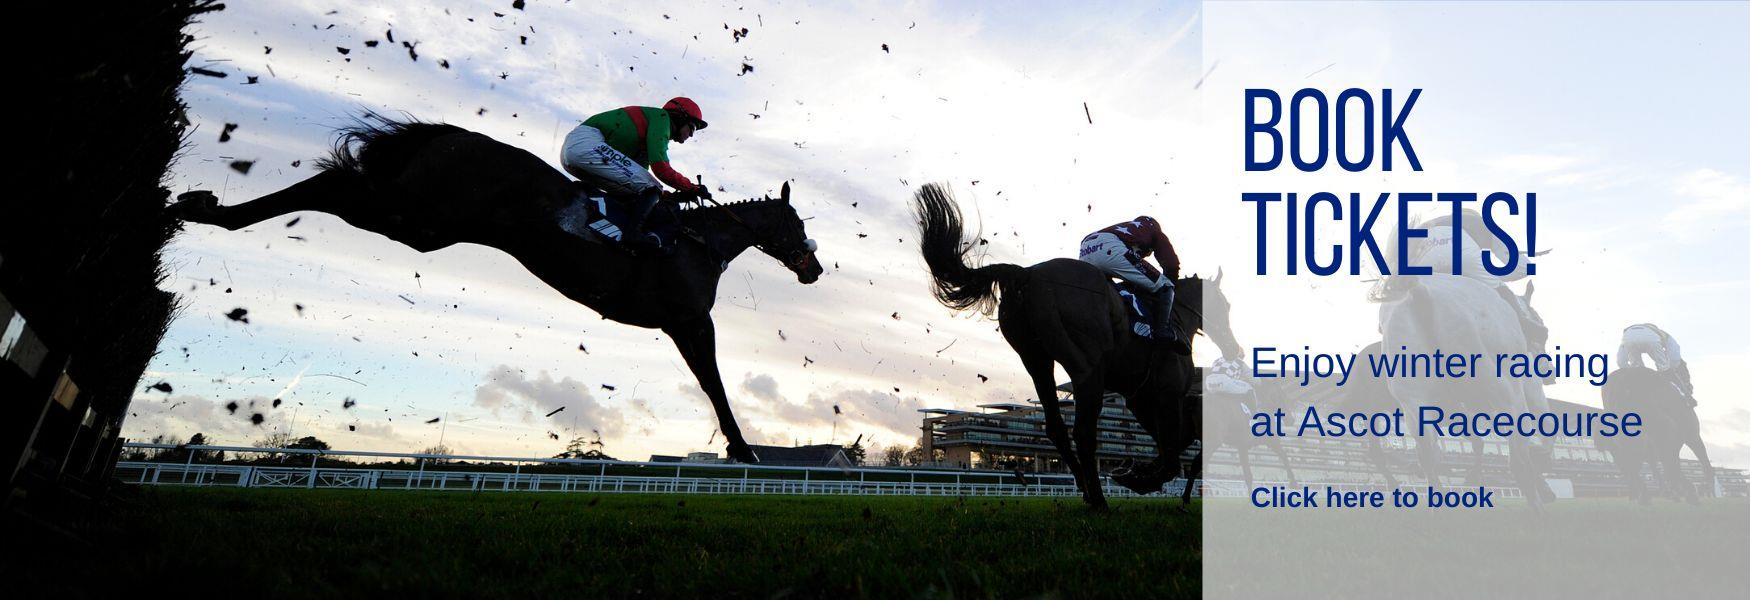 Book thrilling winter racing at Ascot